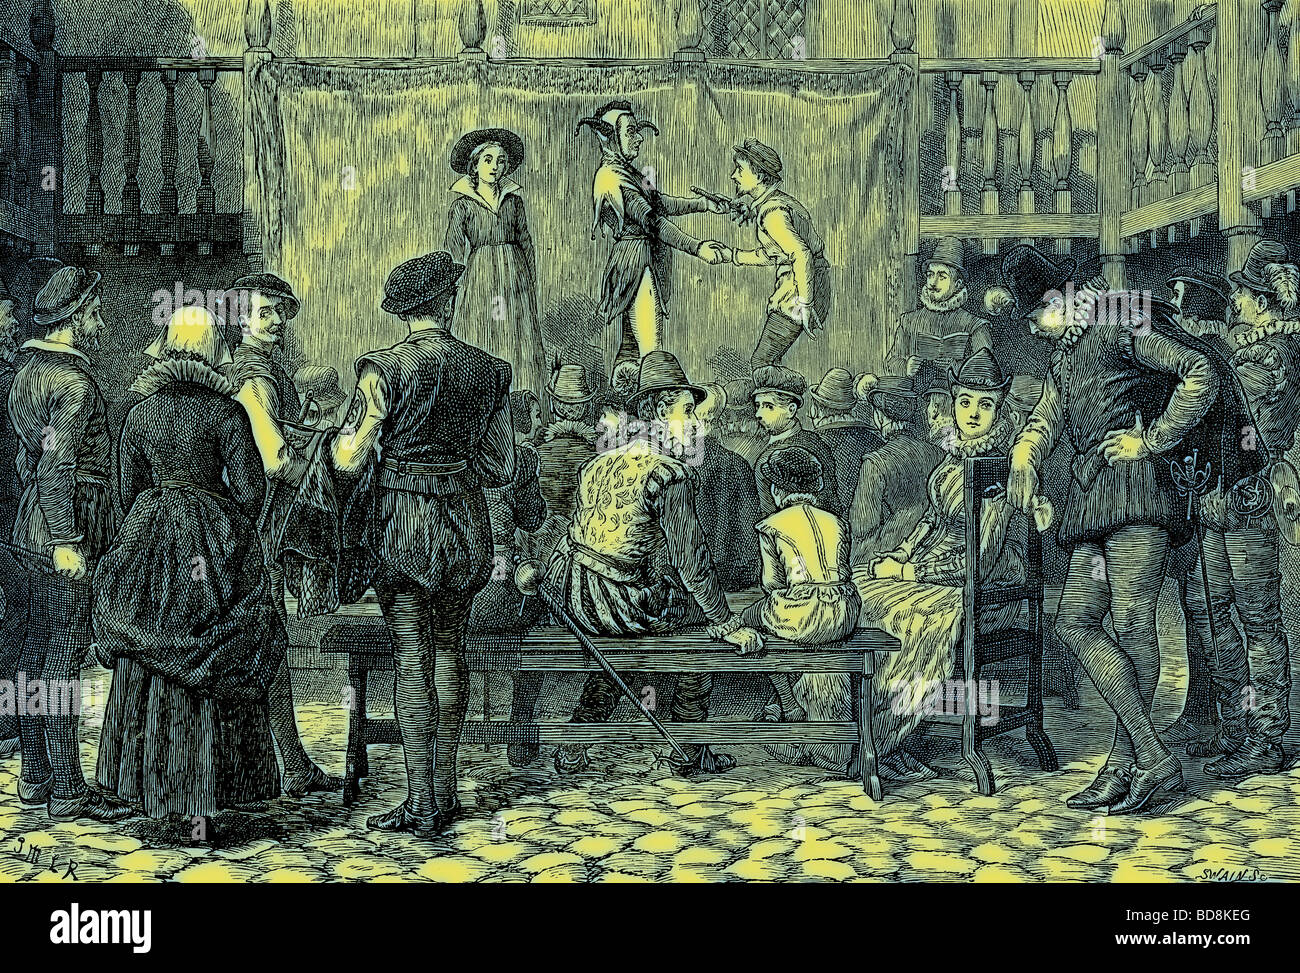 Play taking place in the yard of an inn - Stock Image